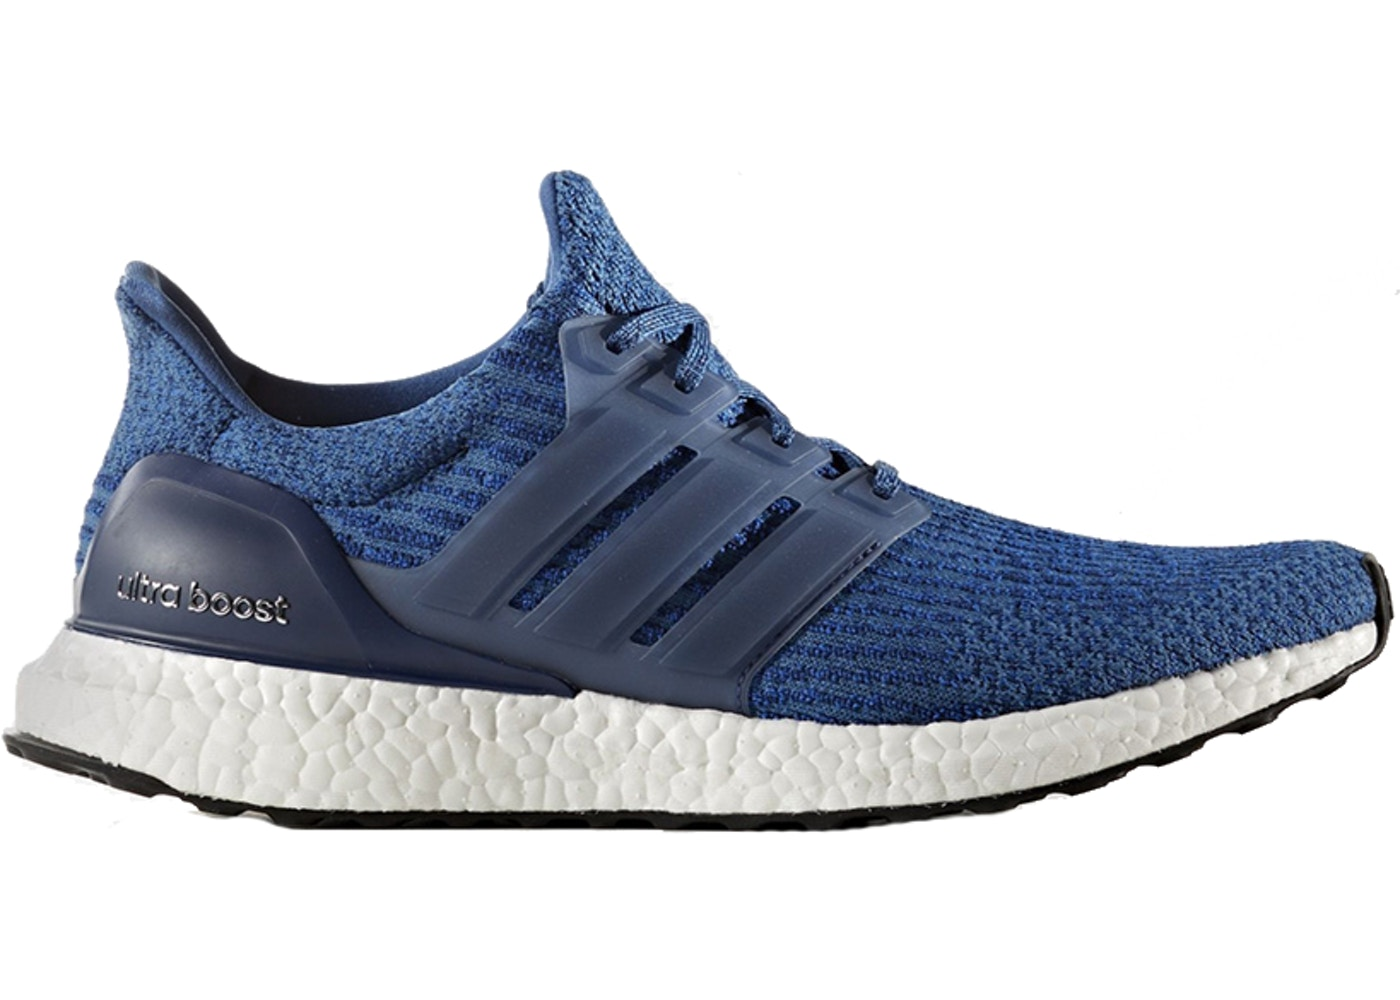 76c566fccf90 adidas Ultra Boost Size 10 Shoes - Volatility